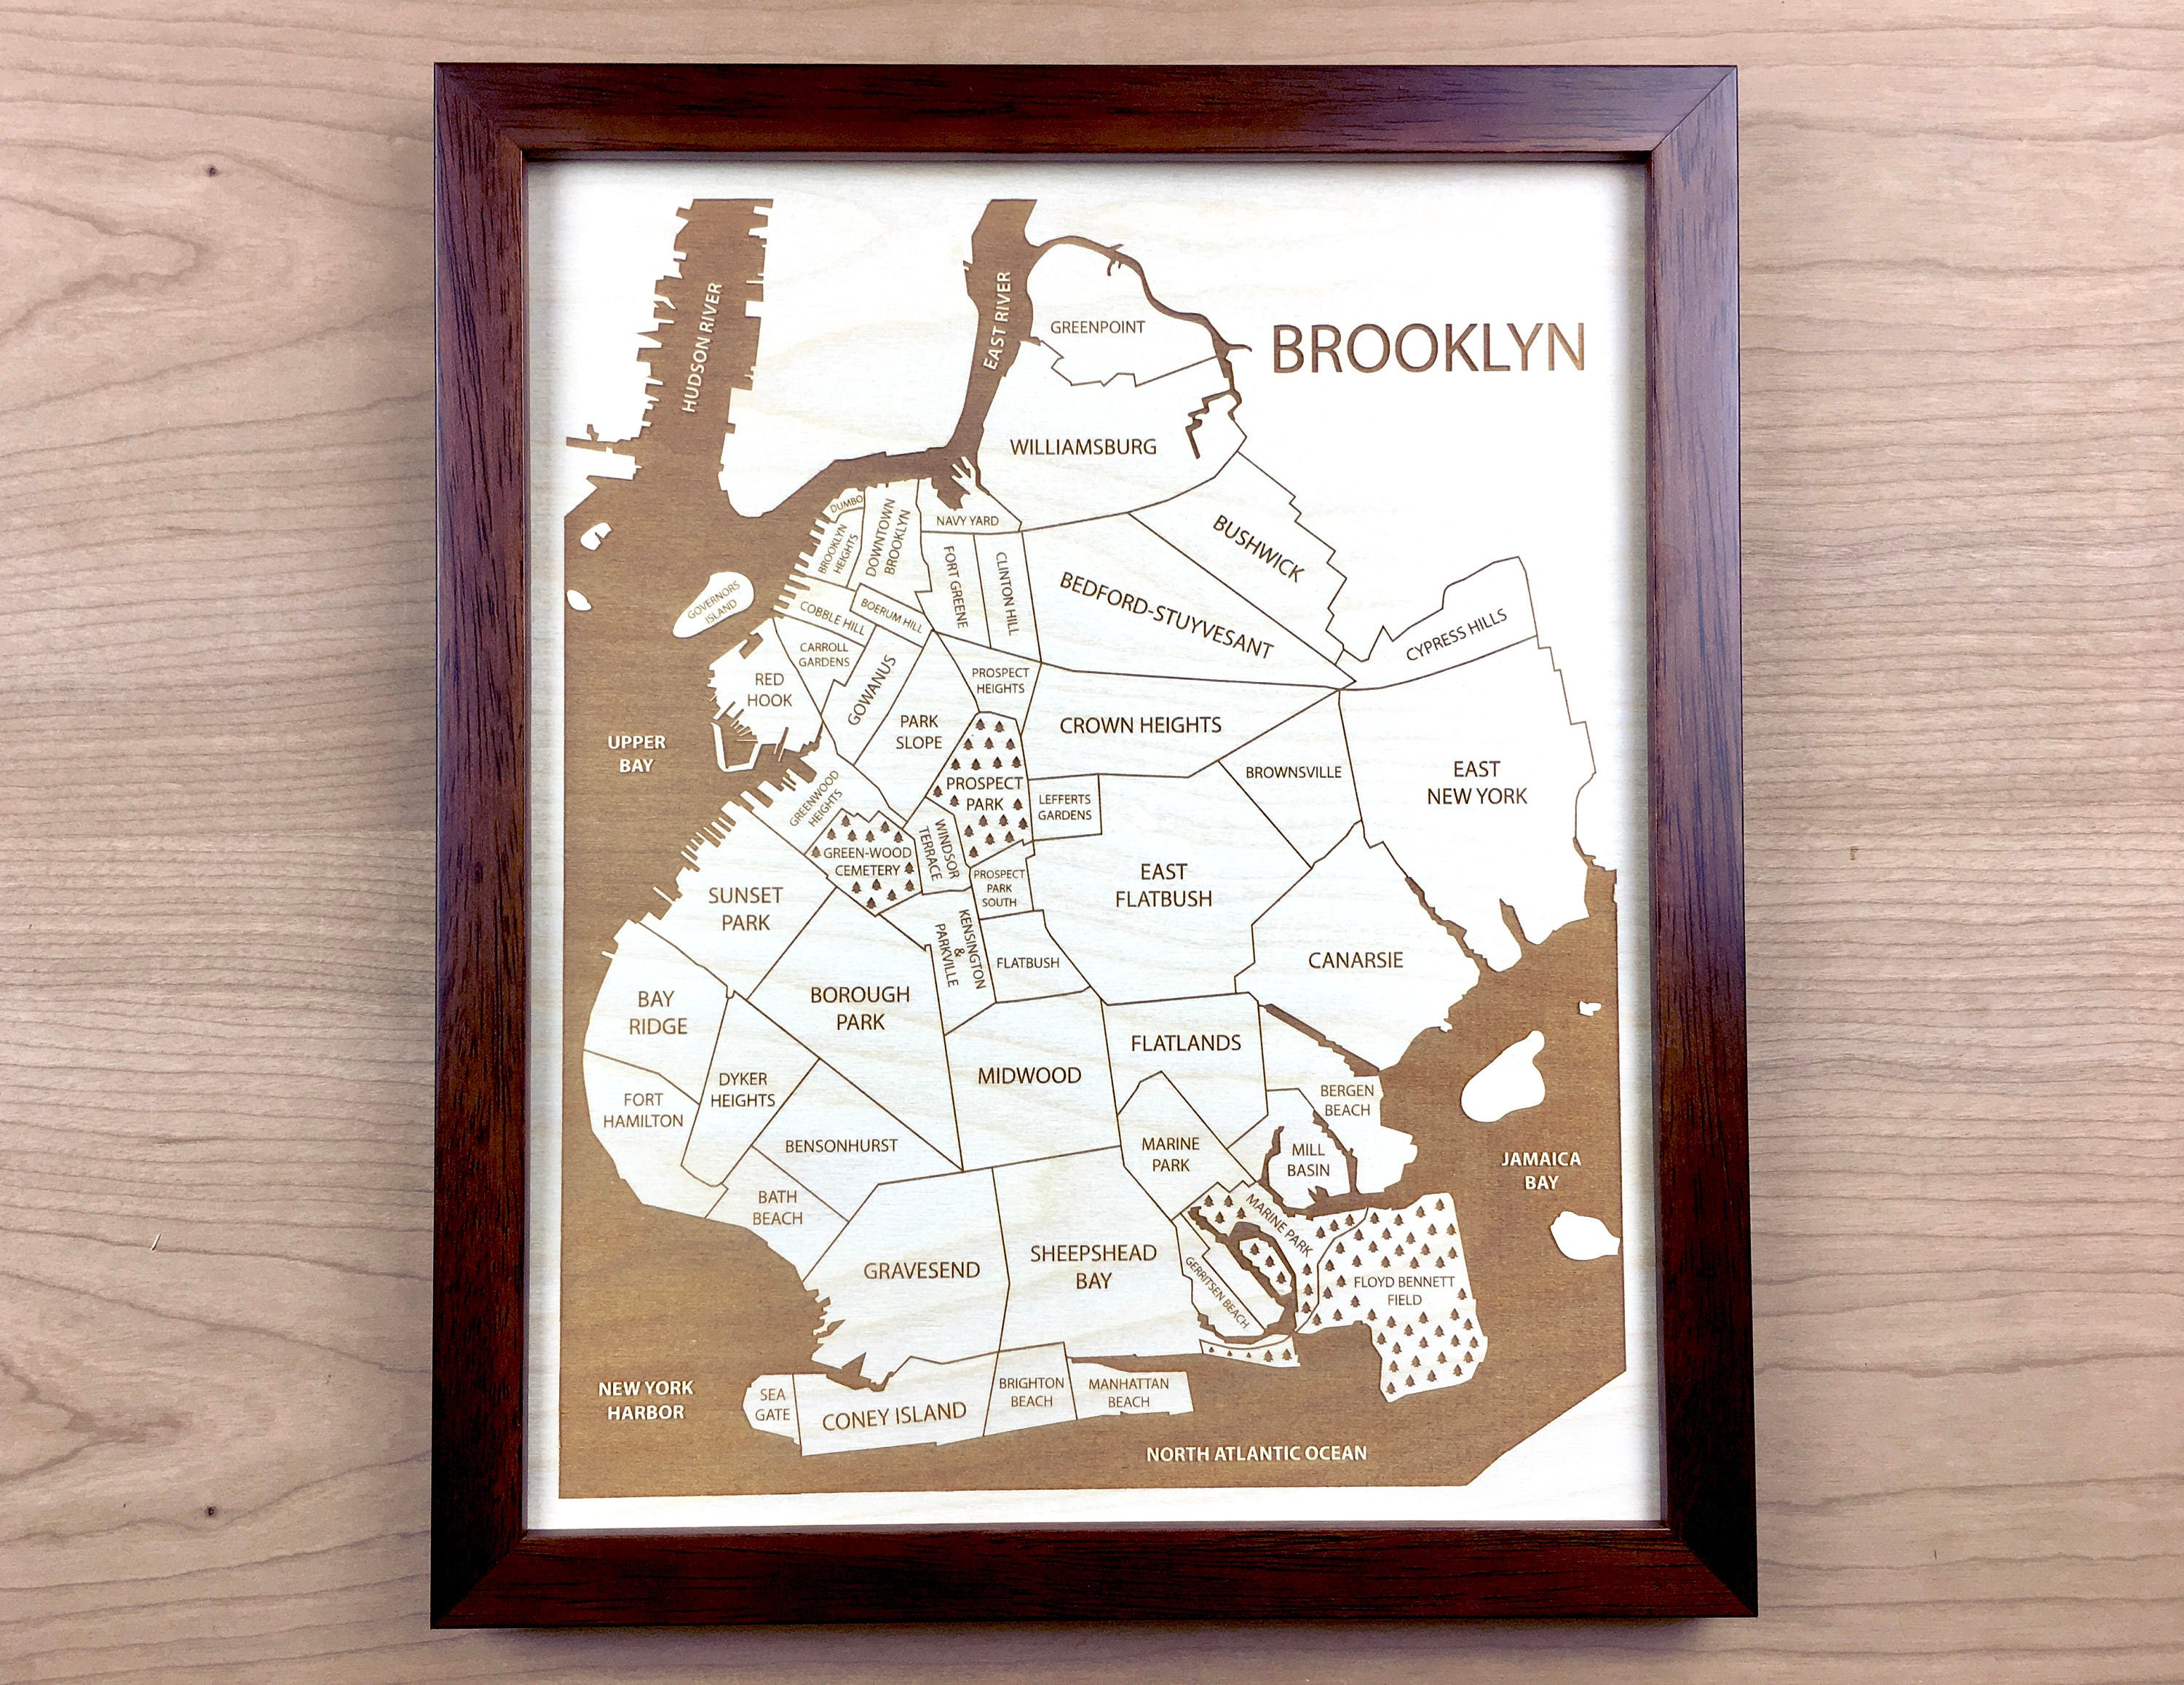 Laser cut picture frames image collections craft decoration ideas wood art 6 tree of life laser engraved wood wall art decor brooklyn new york neighborhood amipublicfo Choice Image